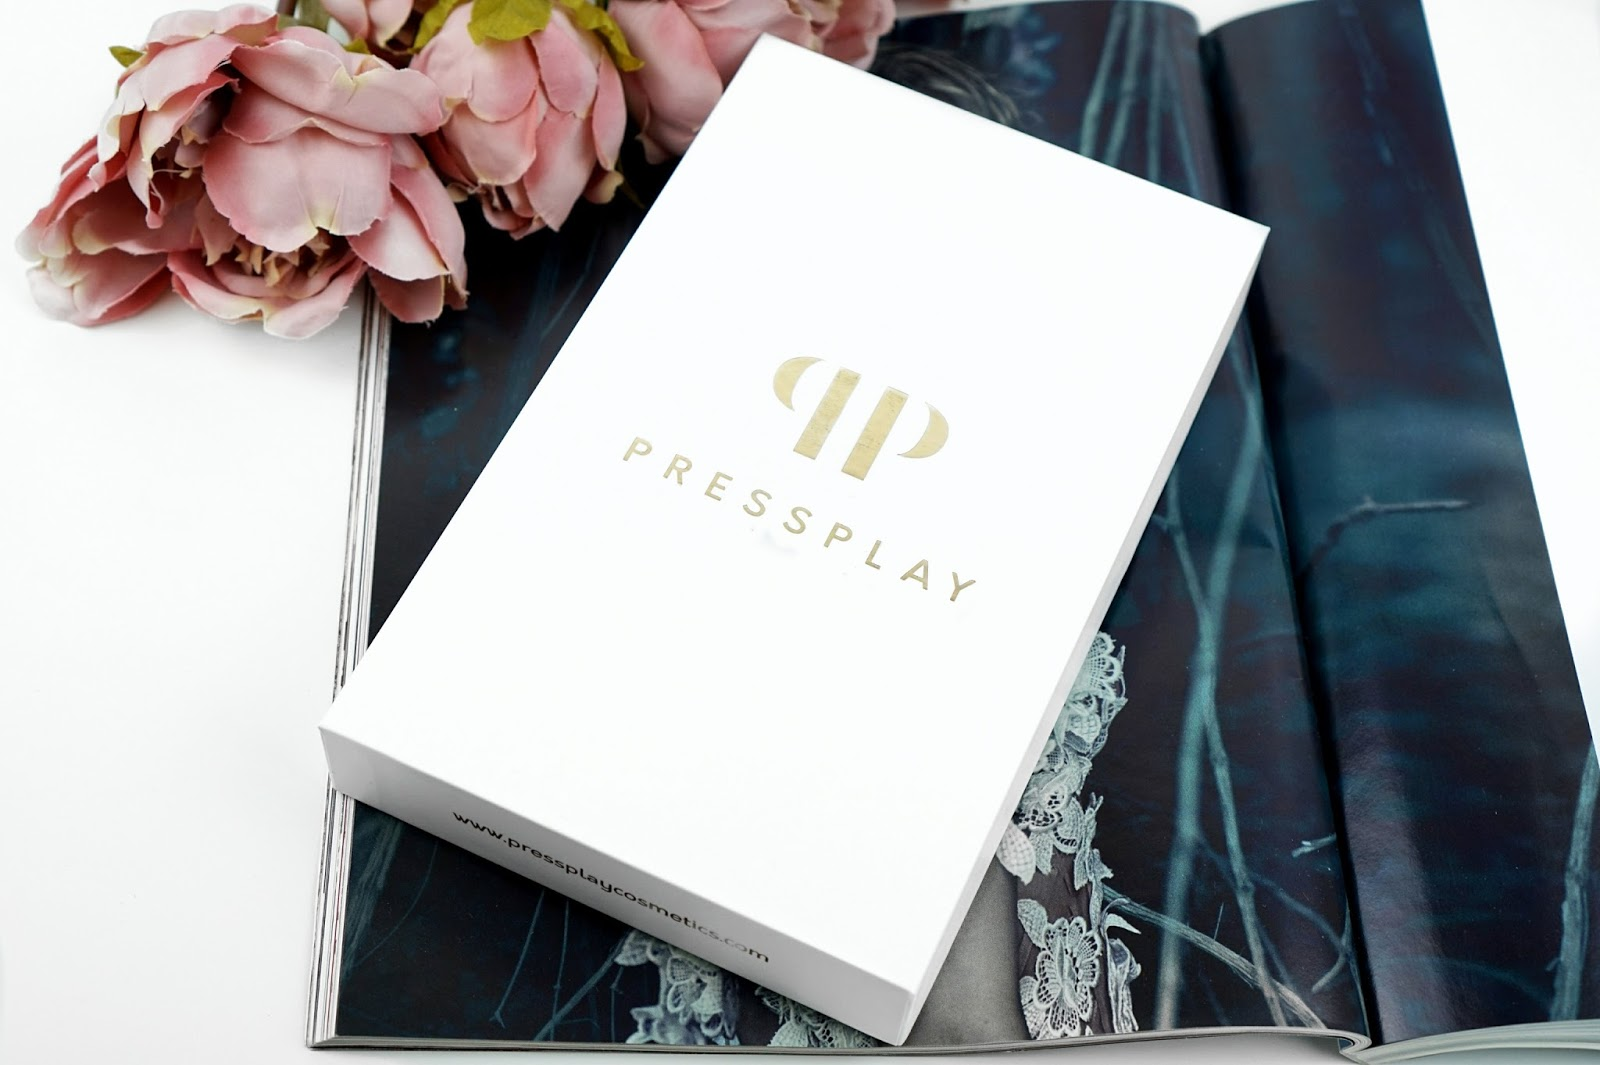 Pressplay_Cosmetics_Capsule_Packaging